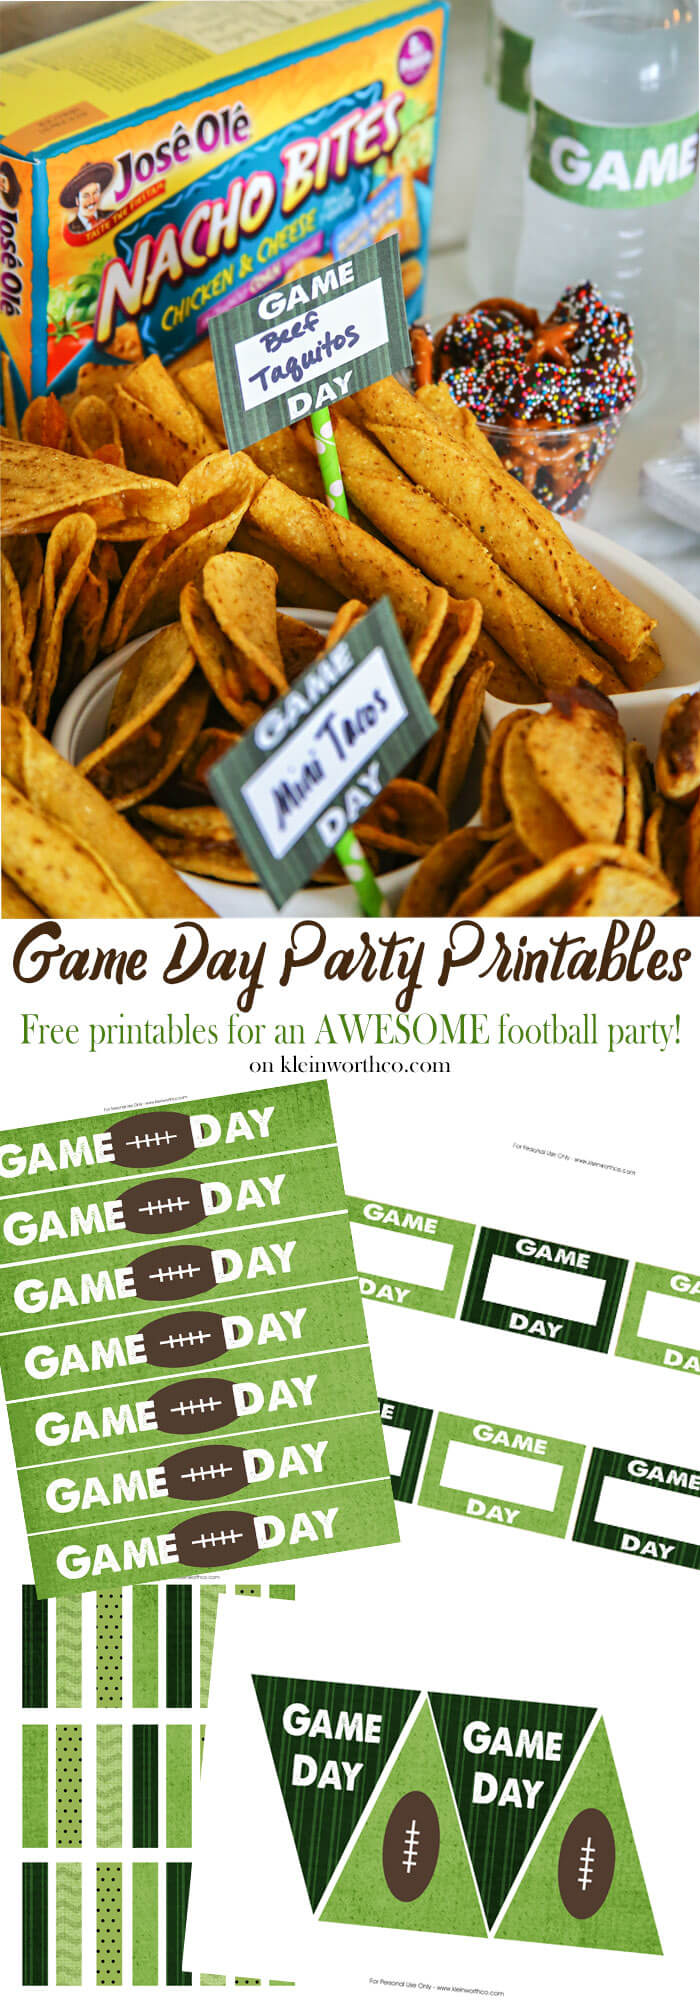 Game Day Party Printables